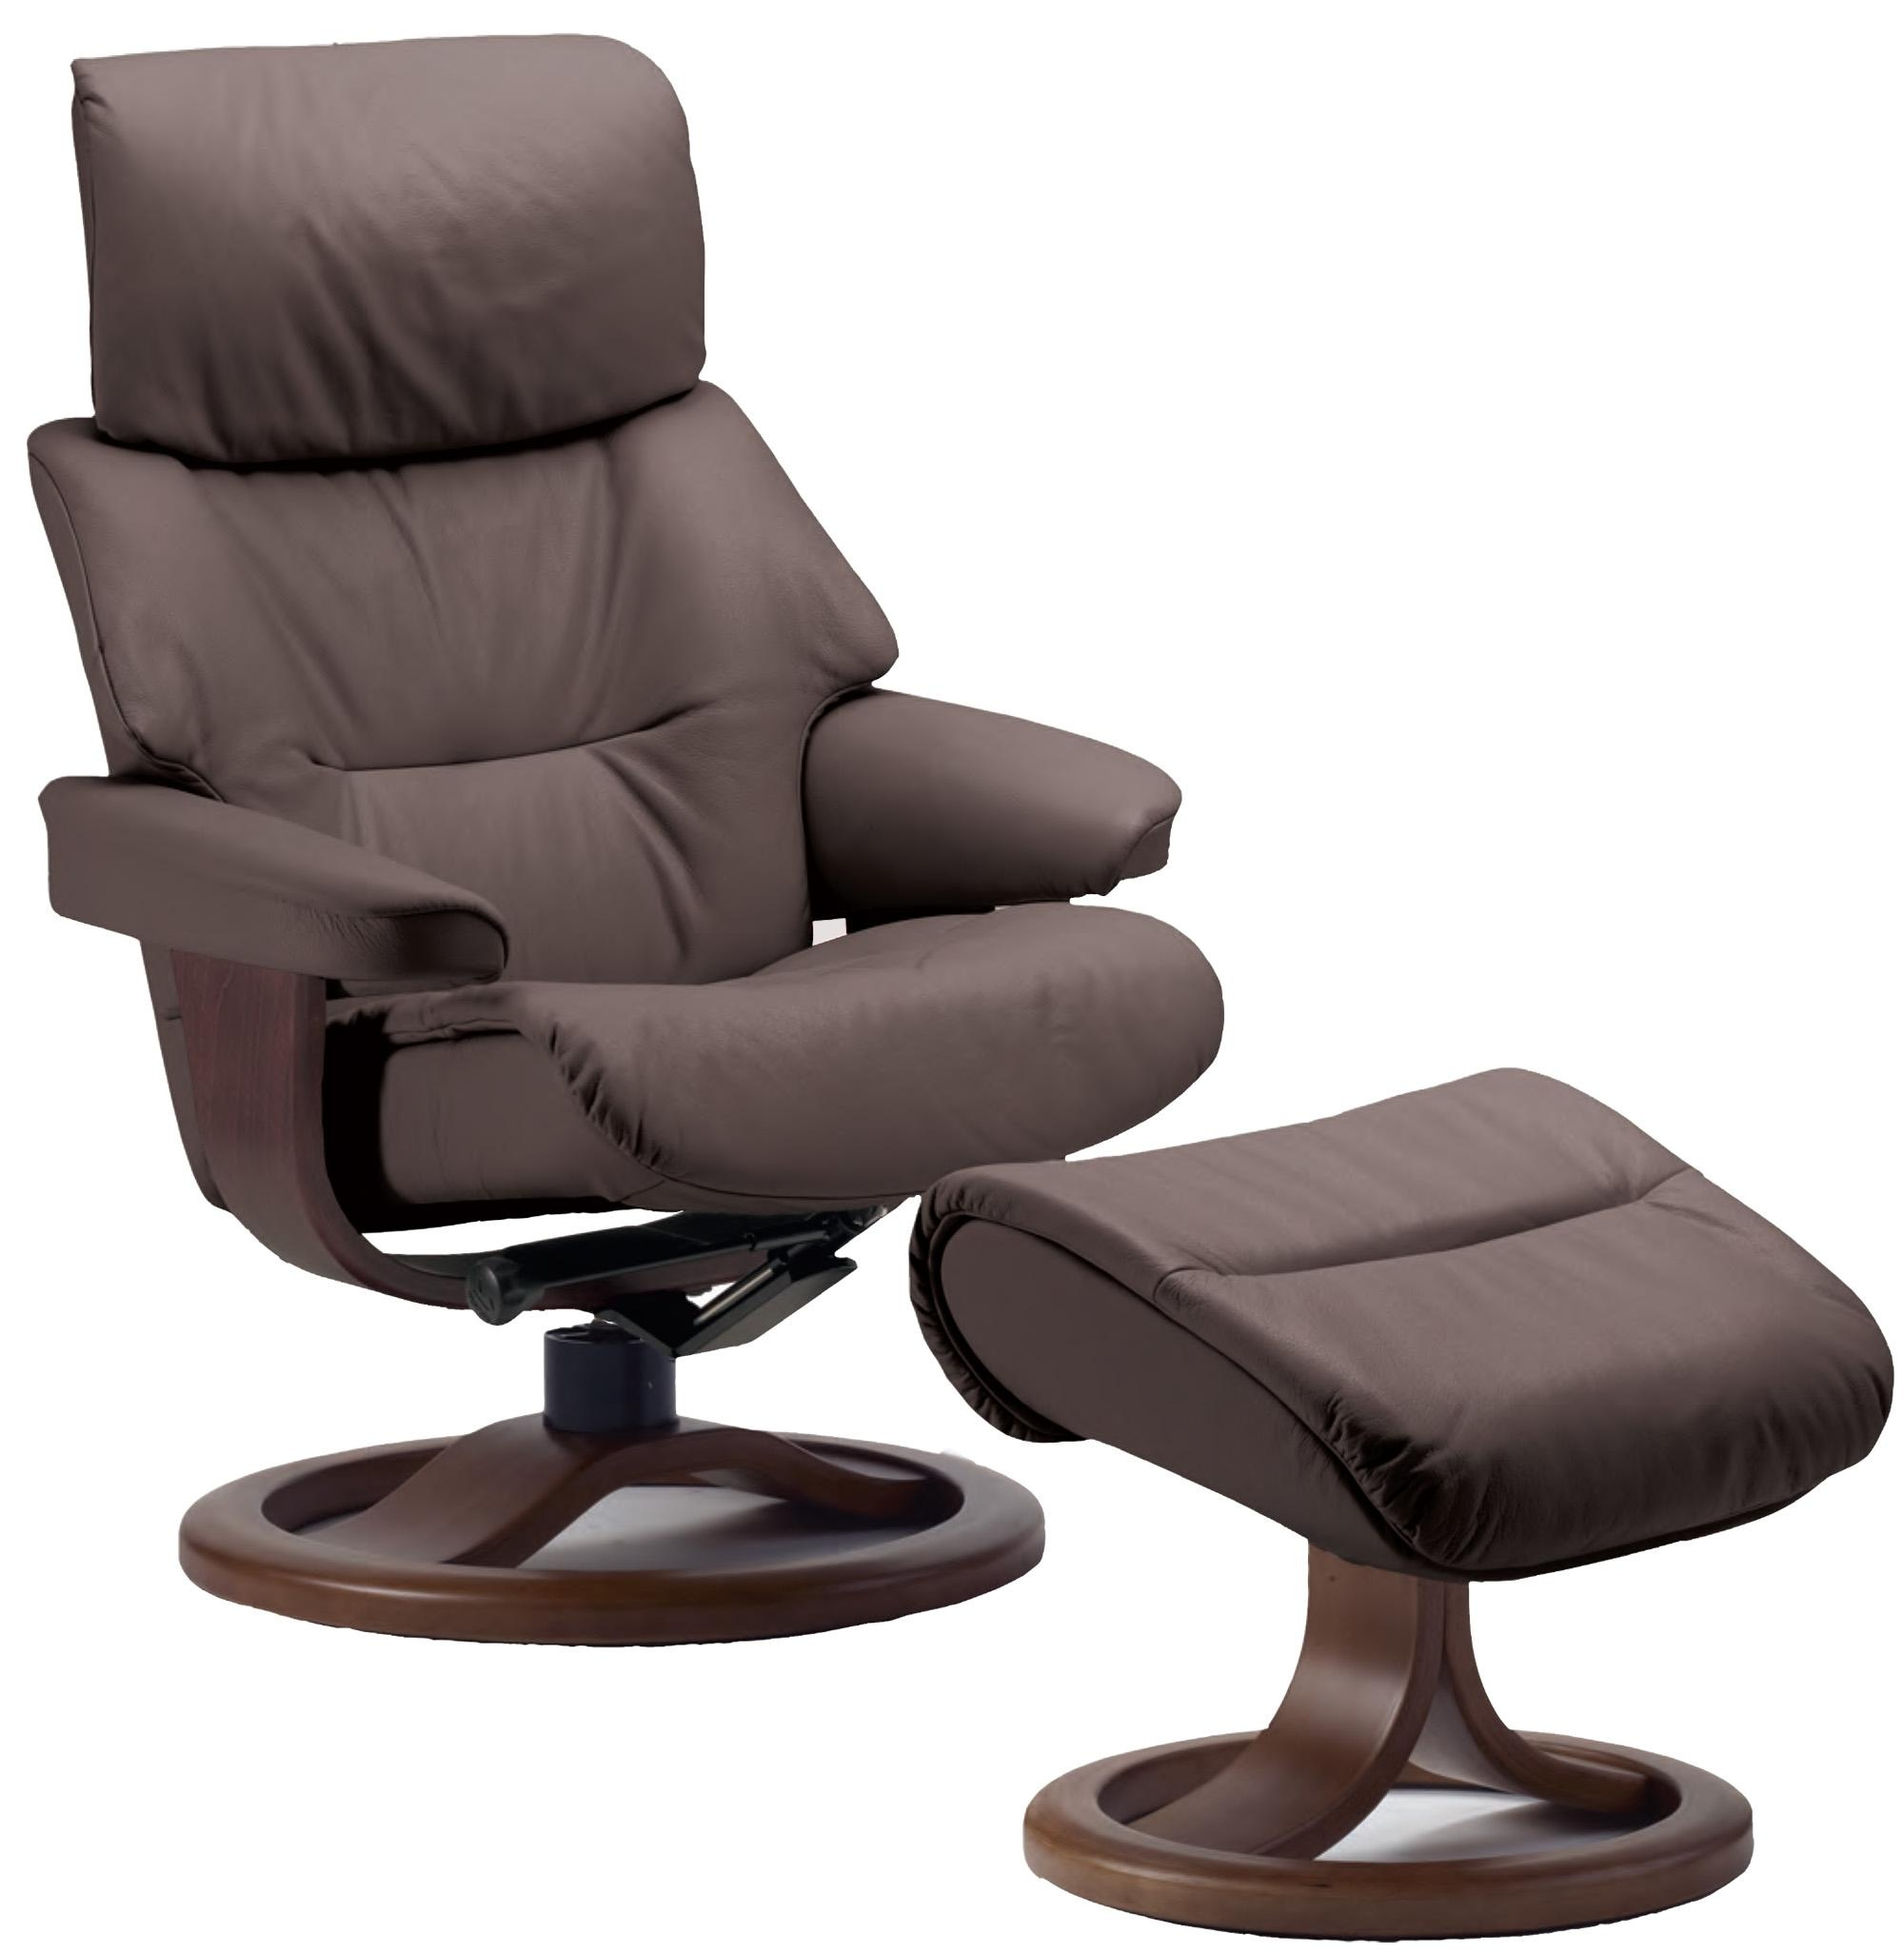 Fjords Grip Ergonomic Leather Recliner Chair + Ottoman Regarding Ergonomic Sofas And Chairs (Image 15 of 20)